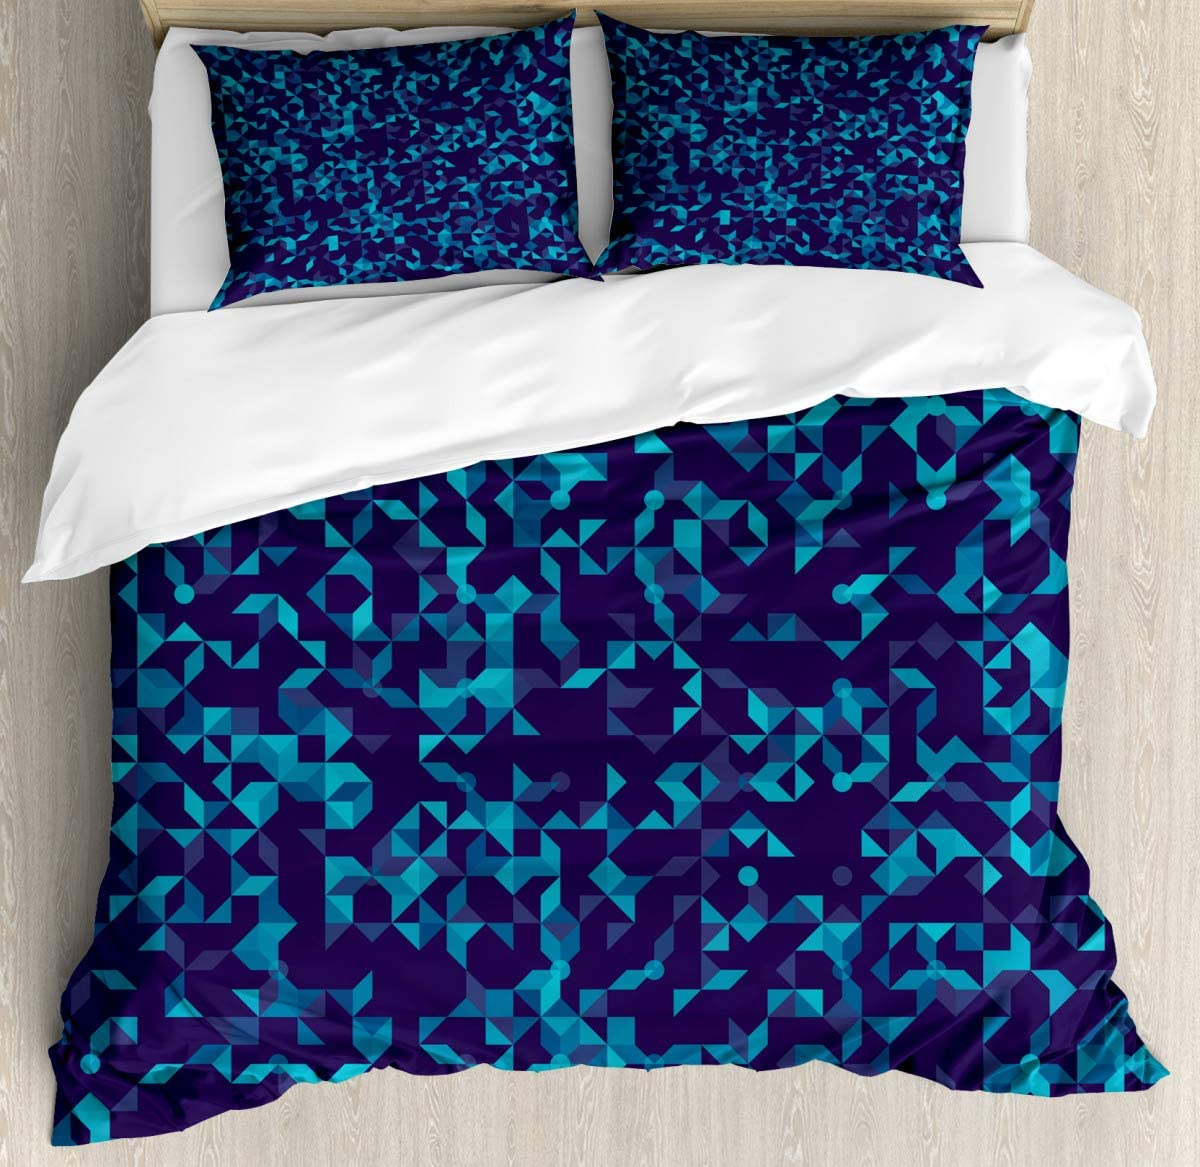 """Standard Quilt coverTriangle Dots Duvet Cover SetDecorative 3 Piece Bedding Set with 2 Pillow Shams70 x86/19""""x29""""inch"""